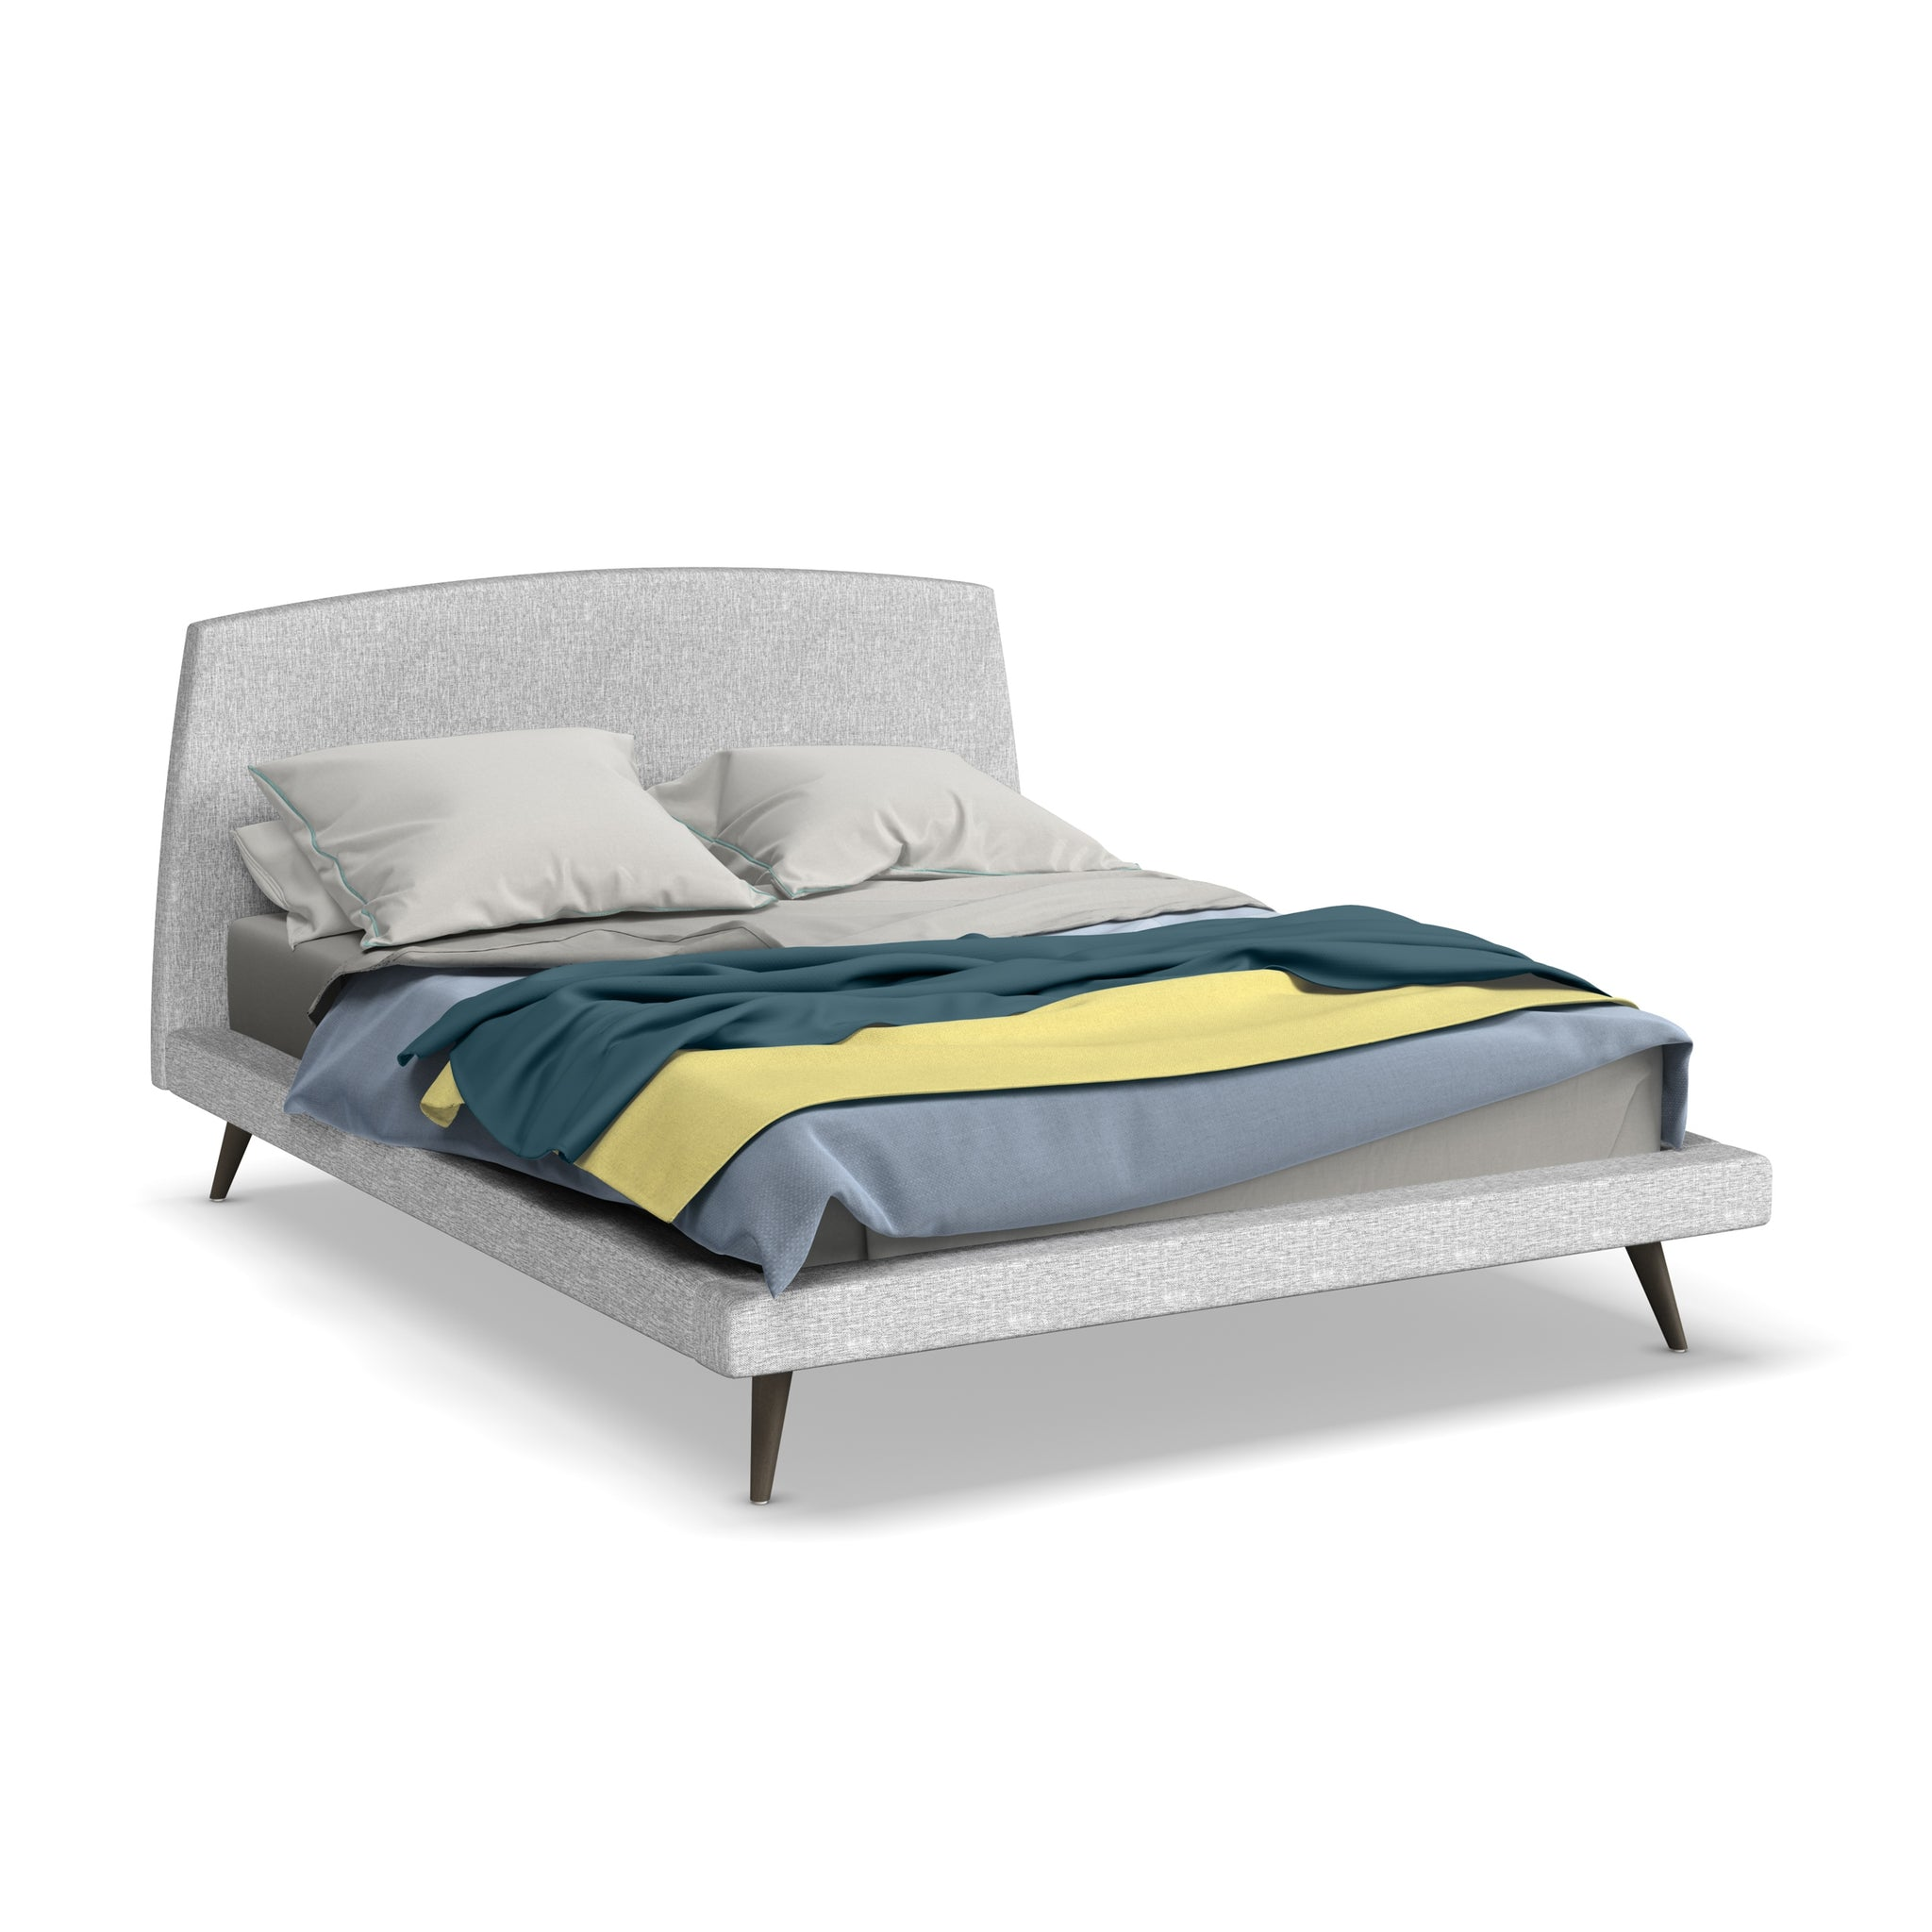 Picture of Whitney Upholstered Bed